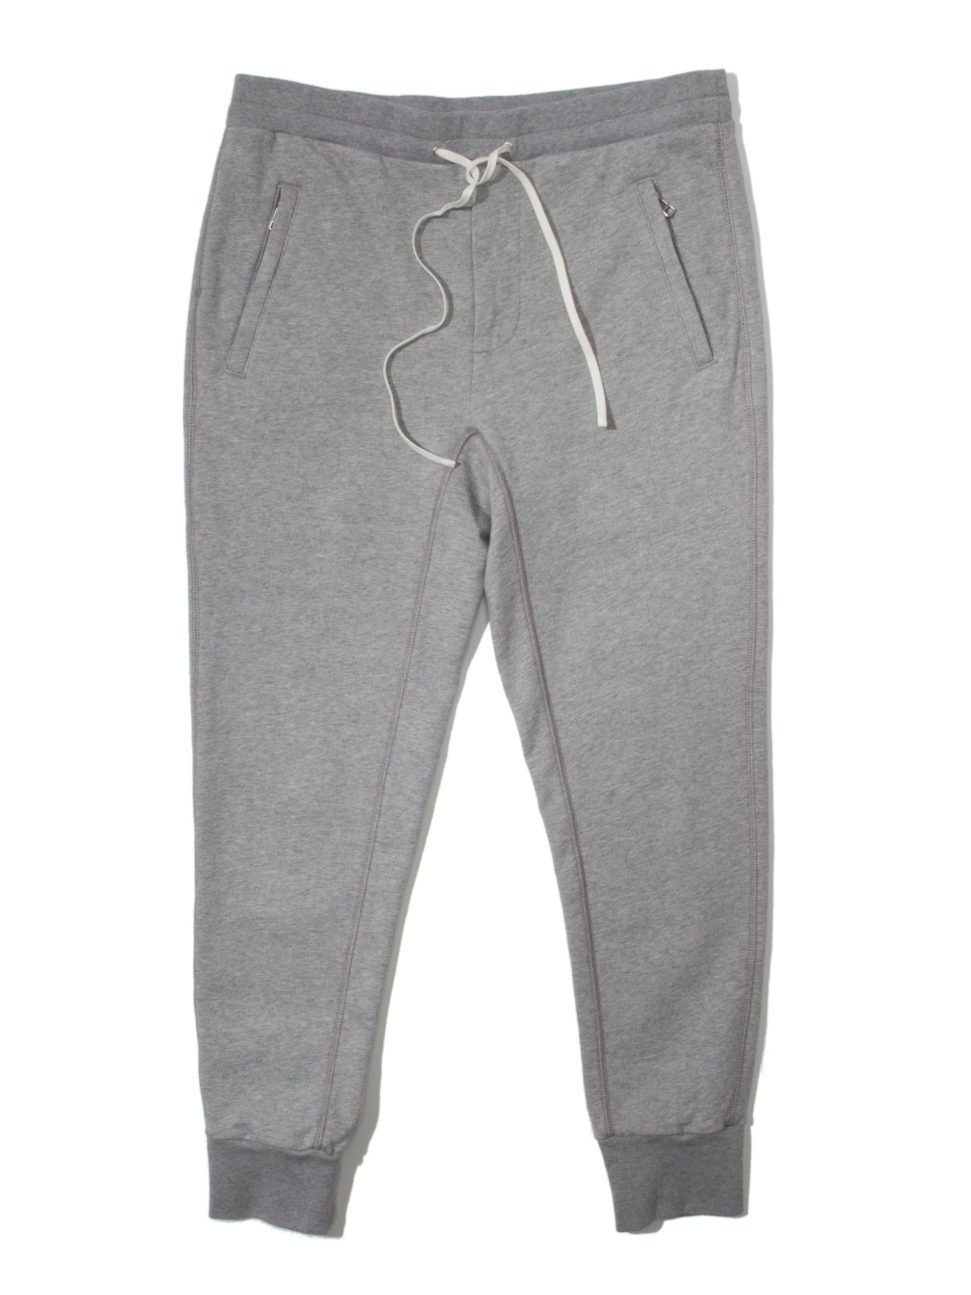 3.1 Phillip Lim Leisure Sweatpant